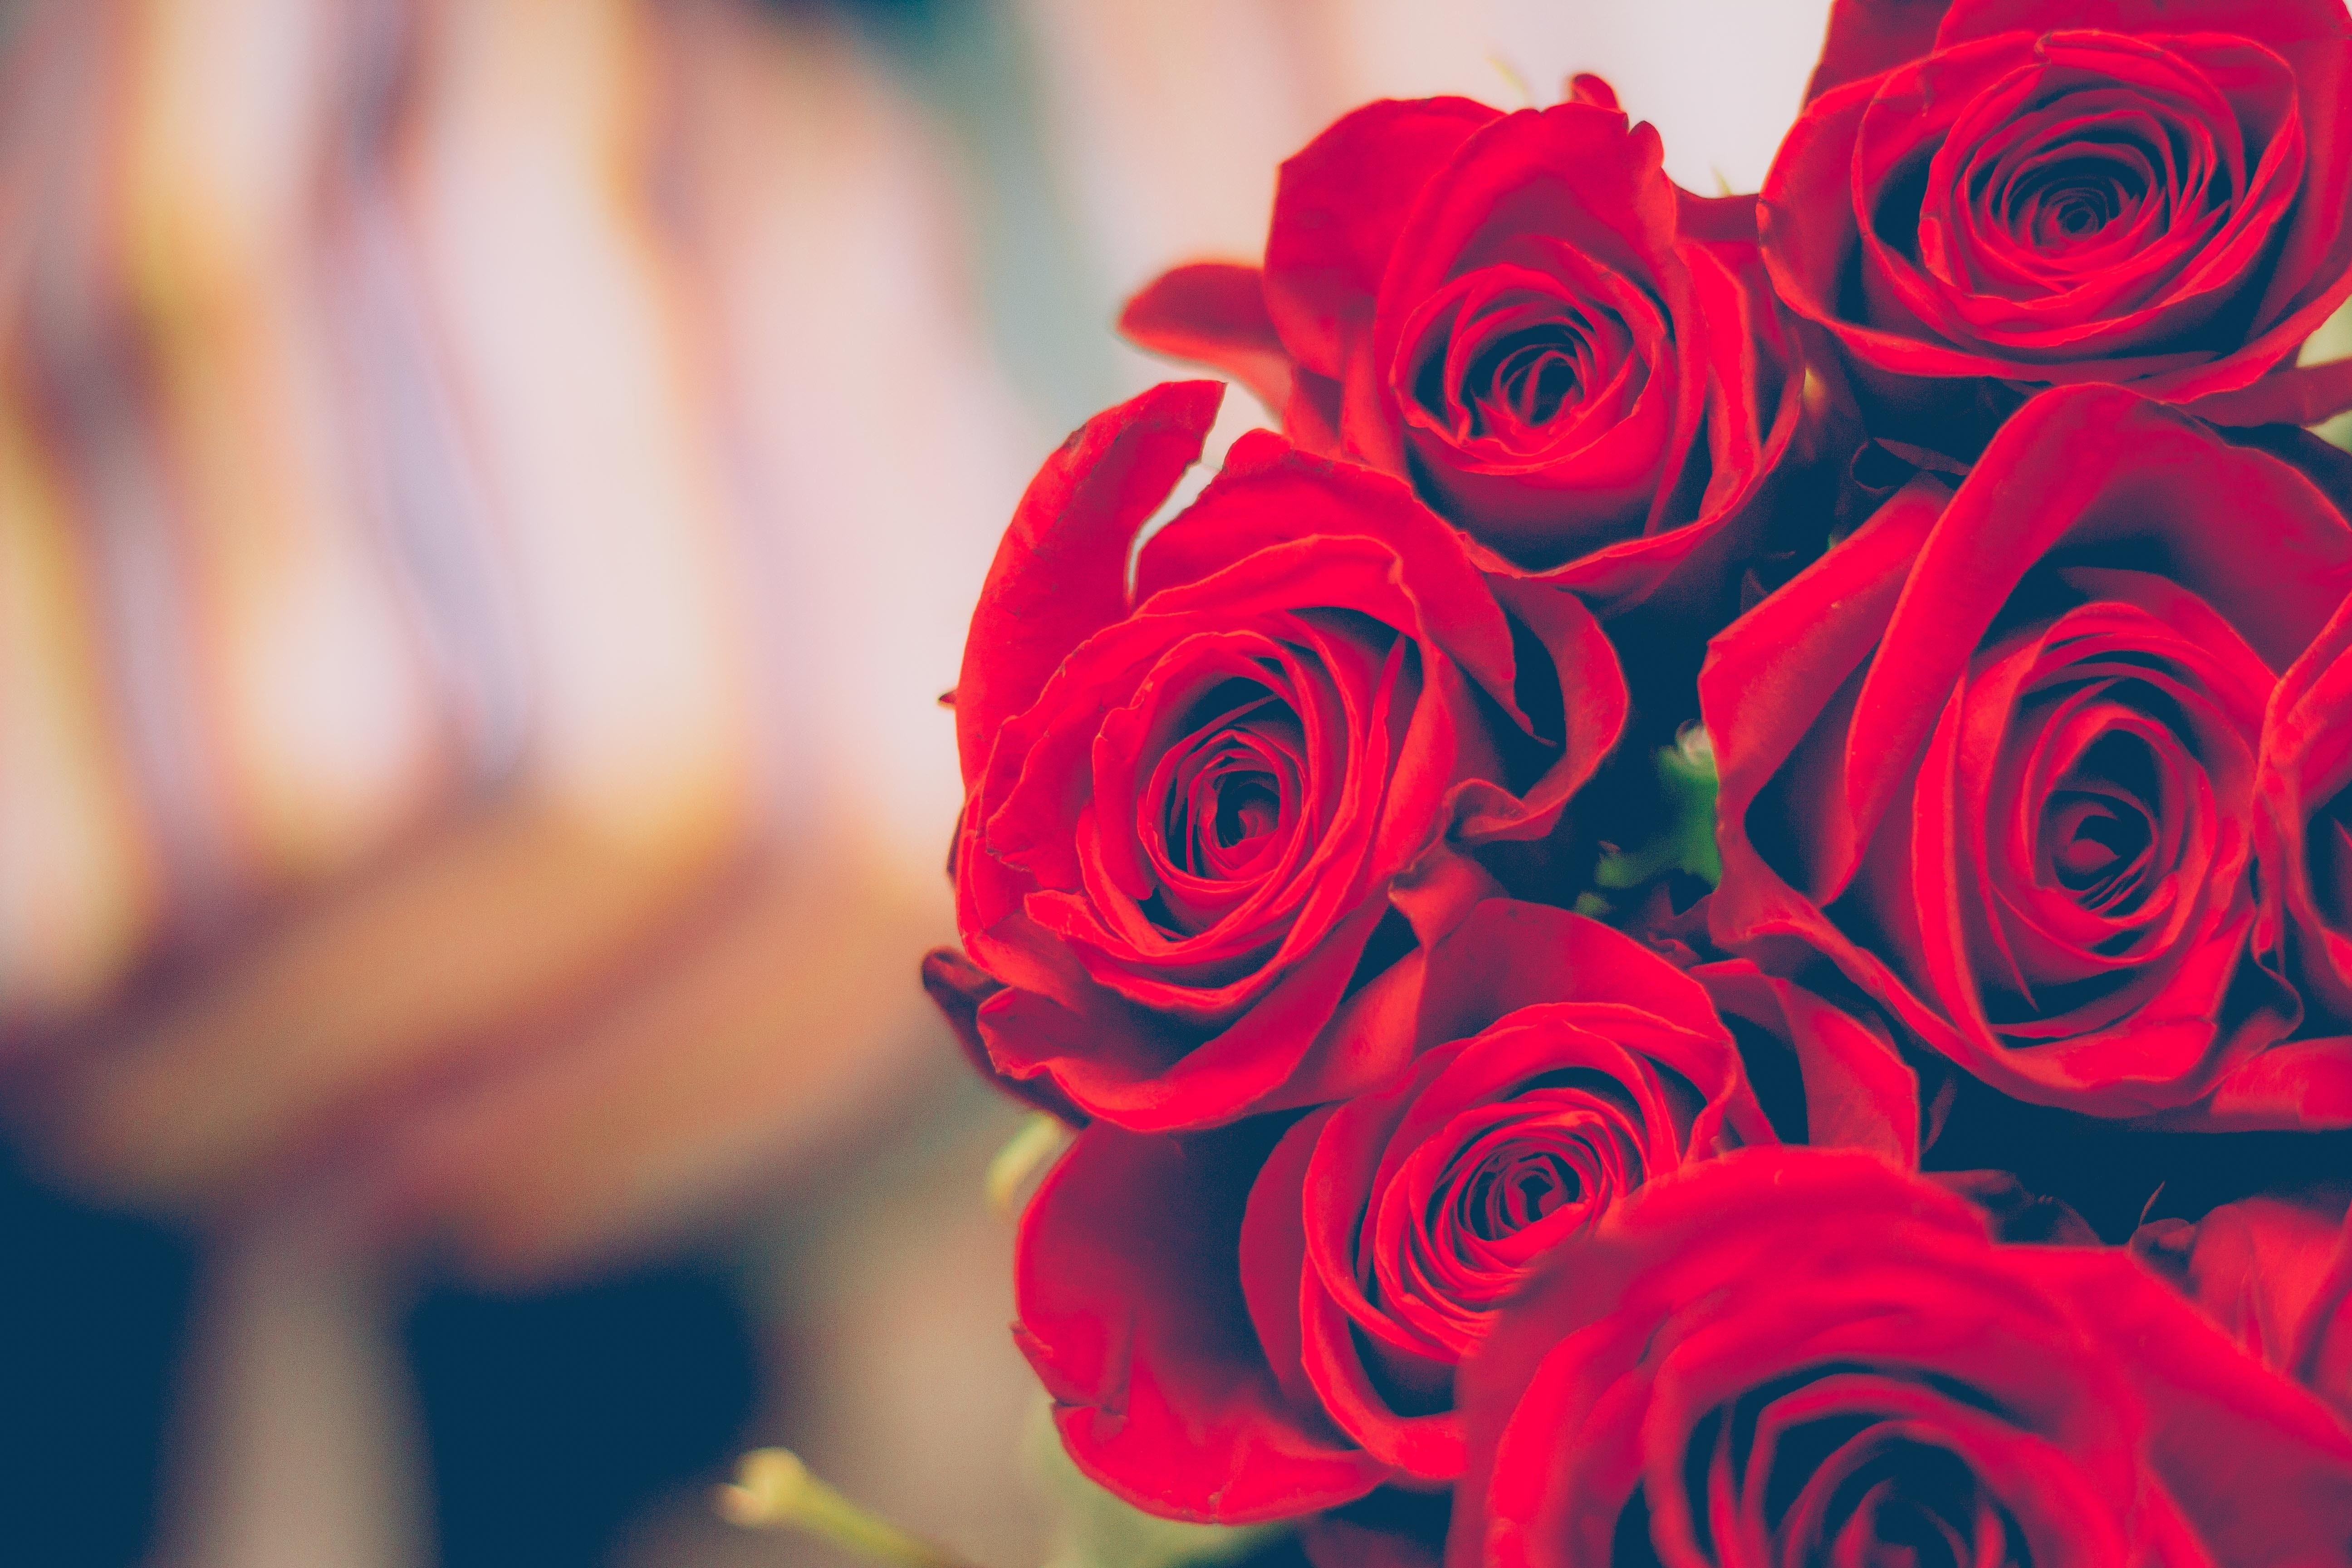 A bunch of roses. | Source: Pexels